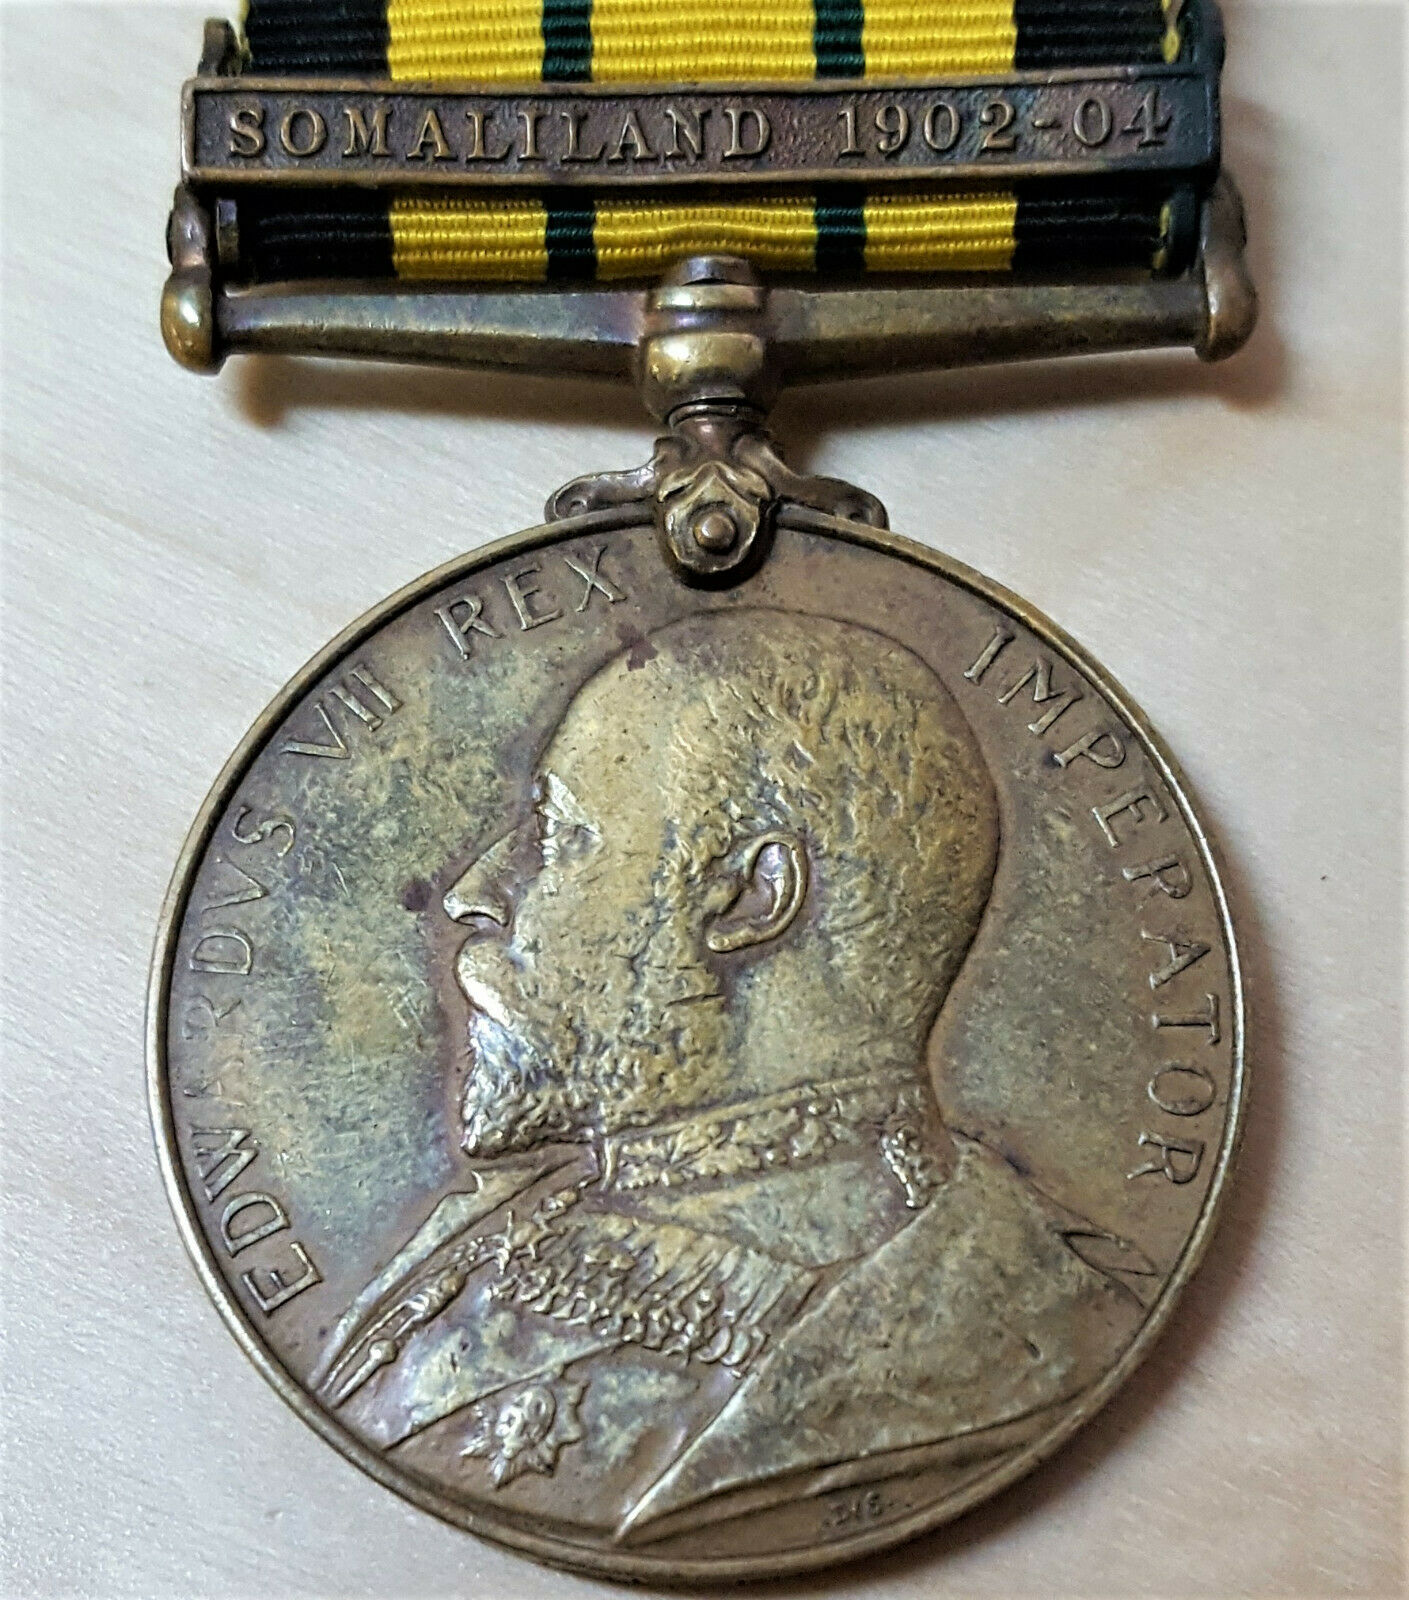 RARE PRE WW1 AFRICA GENERAL SERVICE MEDAL SOMALILAND 1902-04 CLASP BRONZE ISSUE